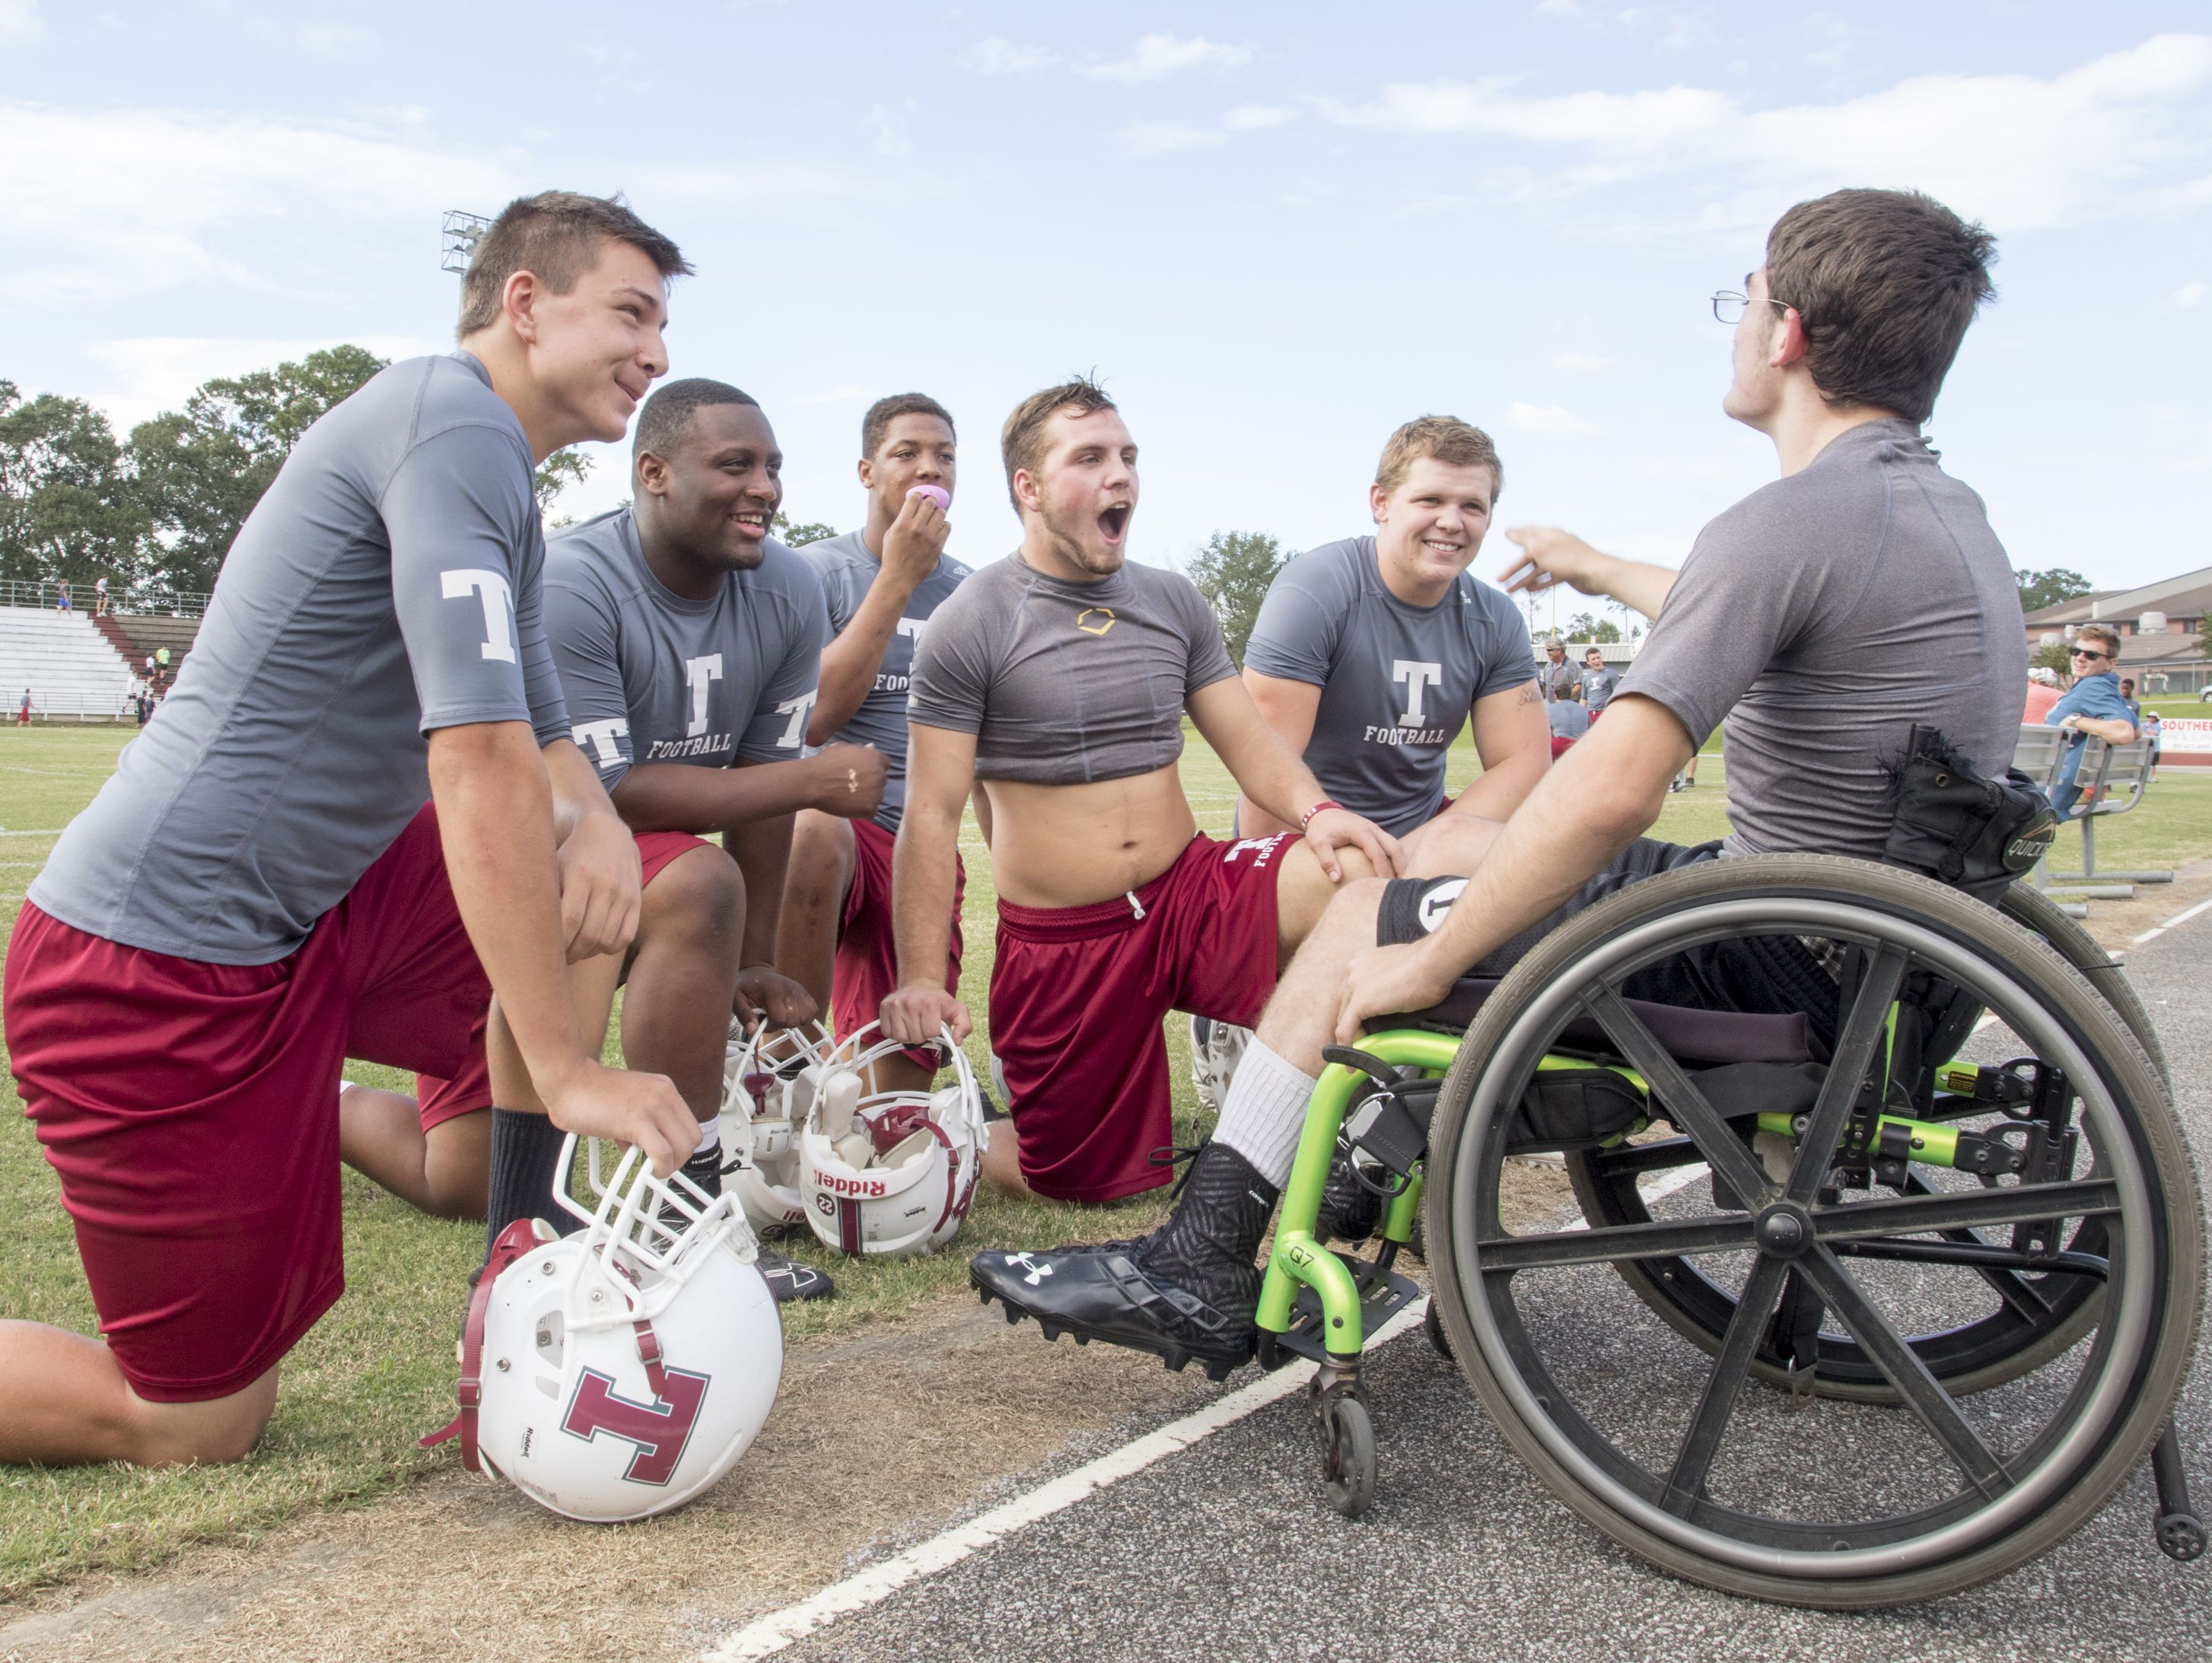 Markus Baxley, a student with cerebral palsy, has a laugh with some of his teammates during football practice at Tate High School in Pensacola on Thursday, October 6, 2016. Baxley will fulfill a lifelong dream when he participates in one play in the Friday night game against Pace High School.